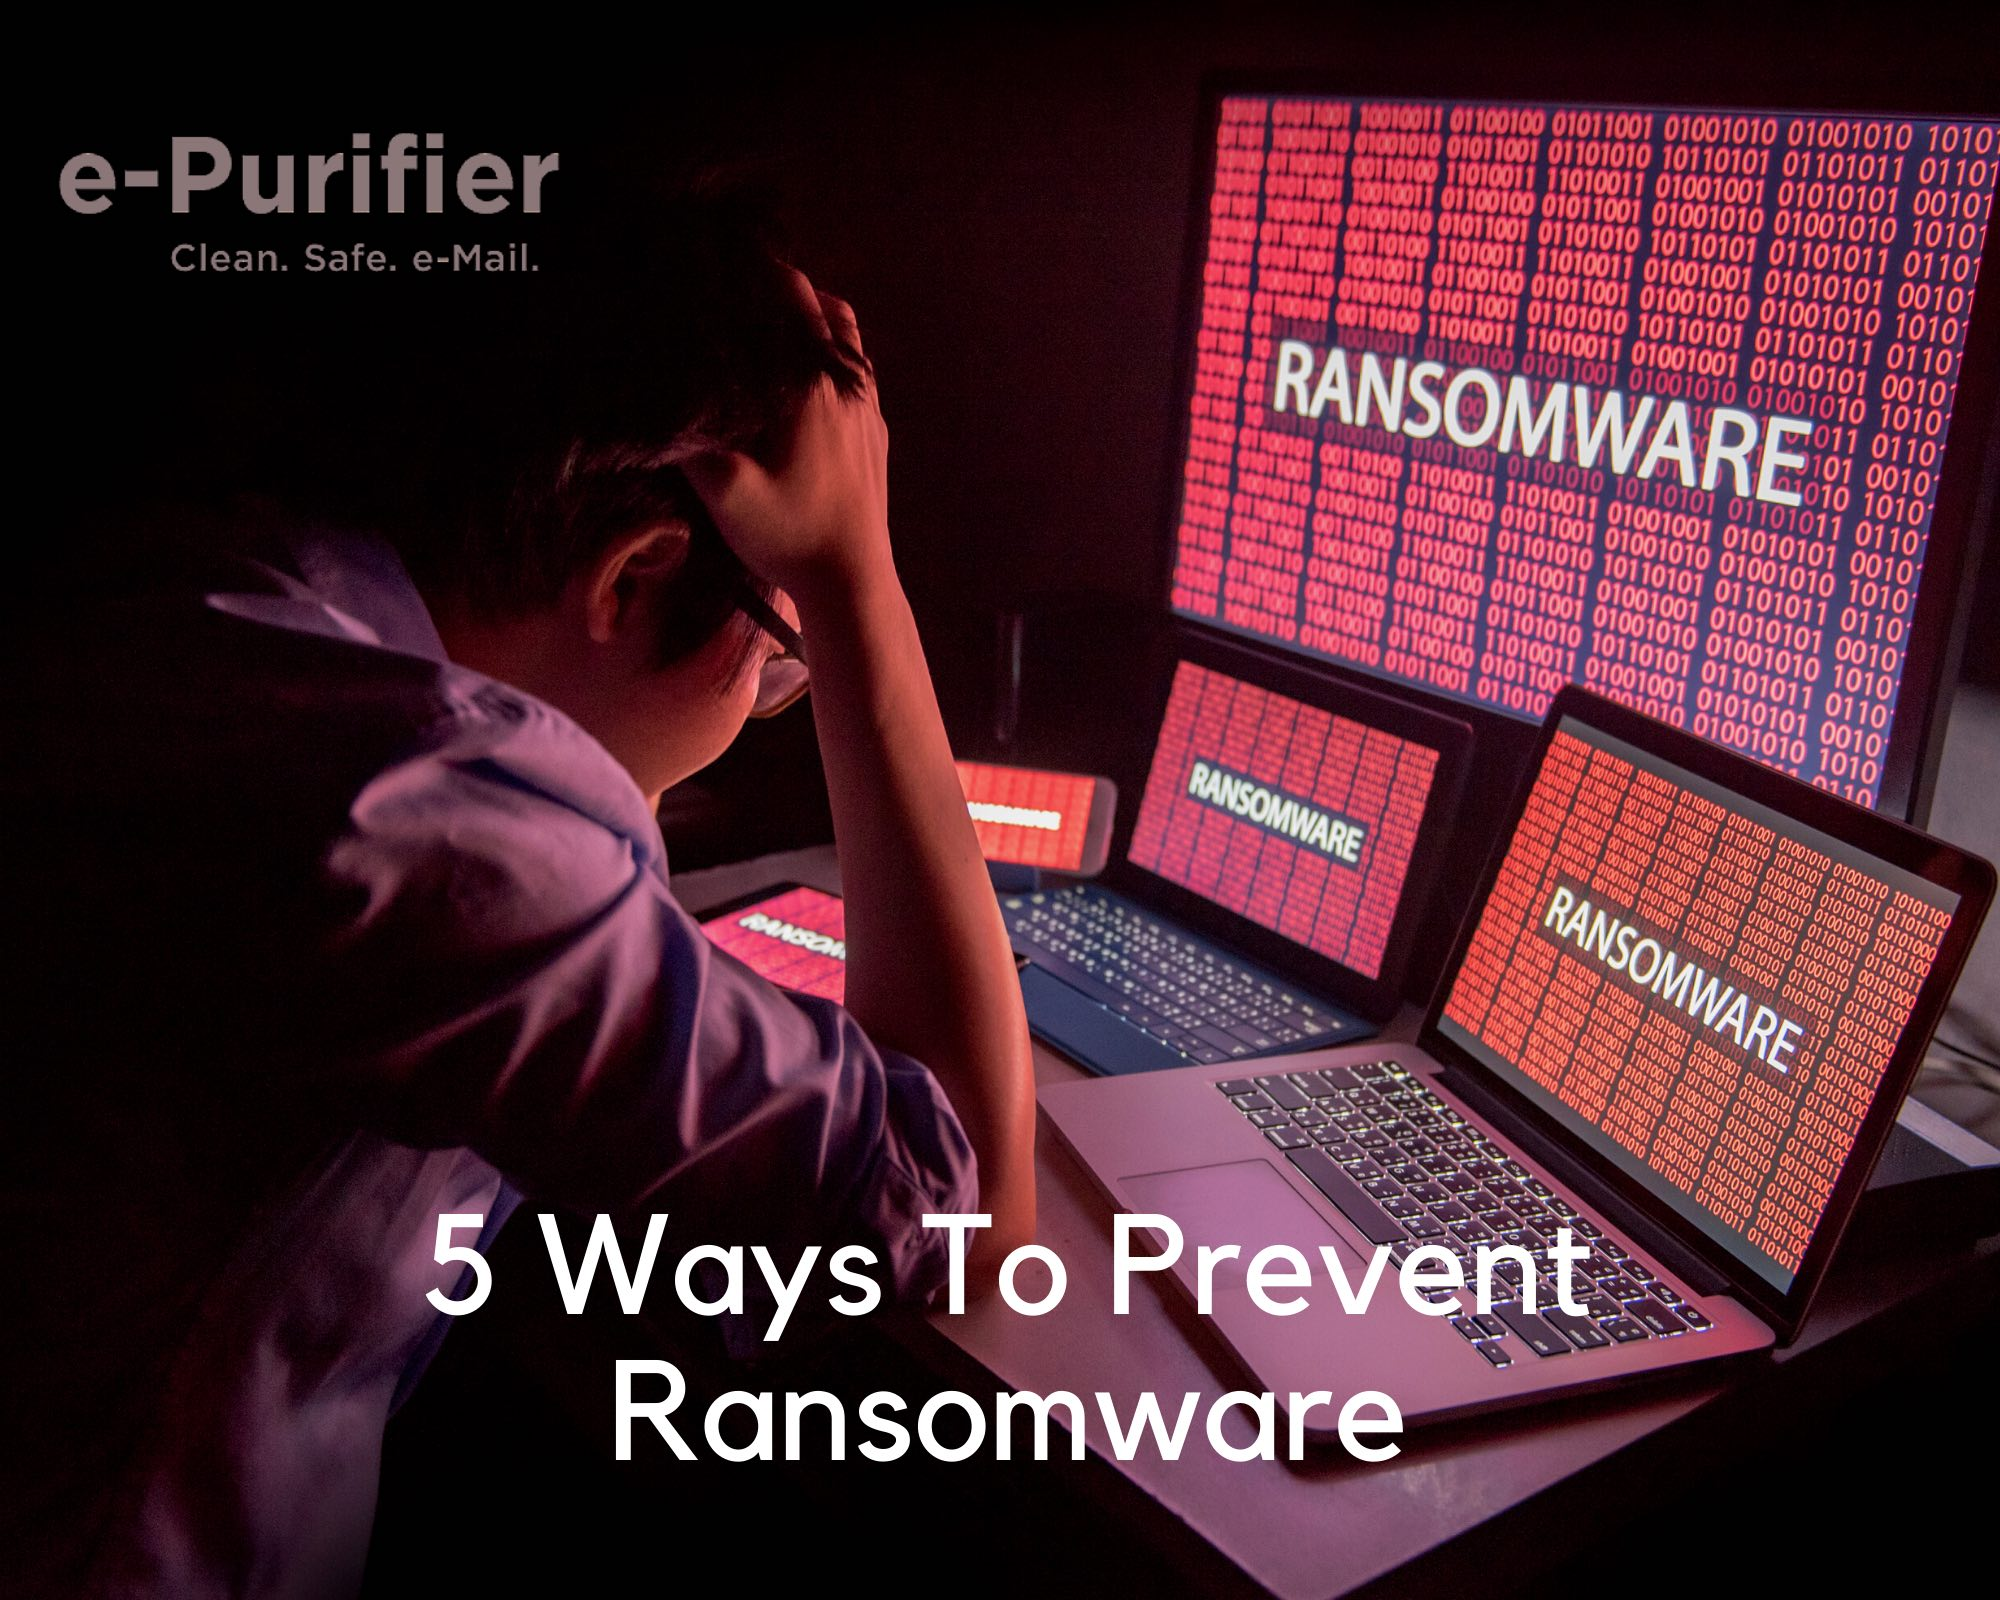 5 ways to prevent ransomware - e-purifier